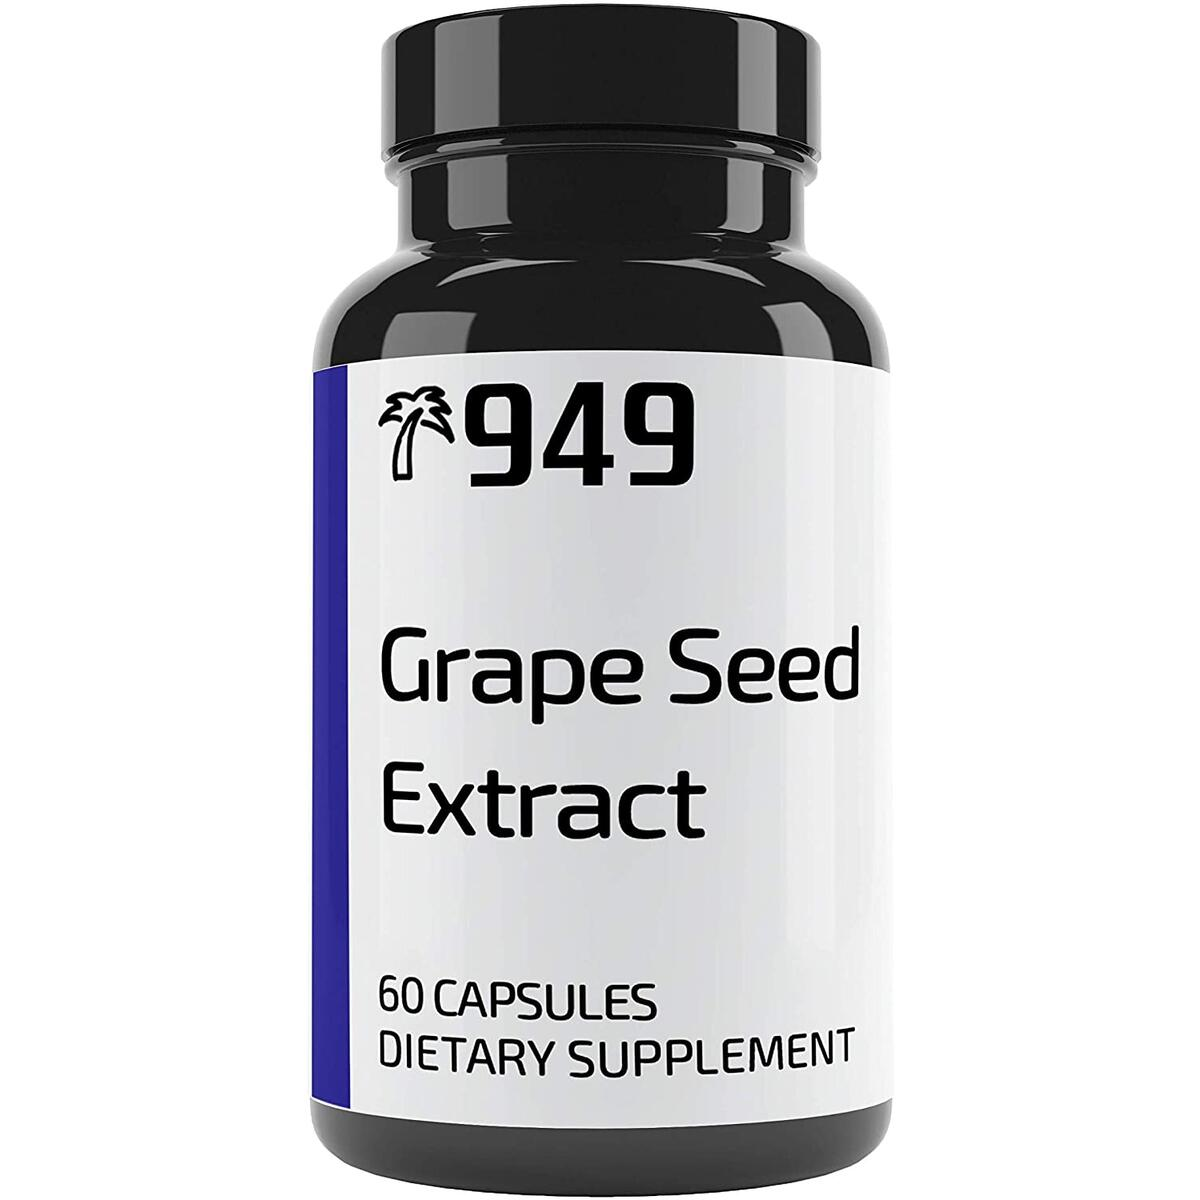 Grape Seed Extract, Under 10 Dollars, 60 Capsules, Natural Anti-Inflammatory, Boosts Immune System, Lab-Tested, No Additives or Fillers, Made in USA, Satisfaction 100% Guaranteed, 949*